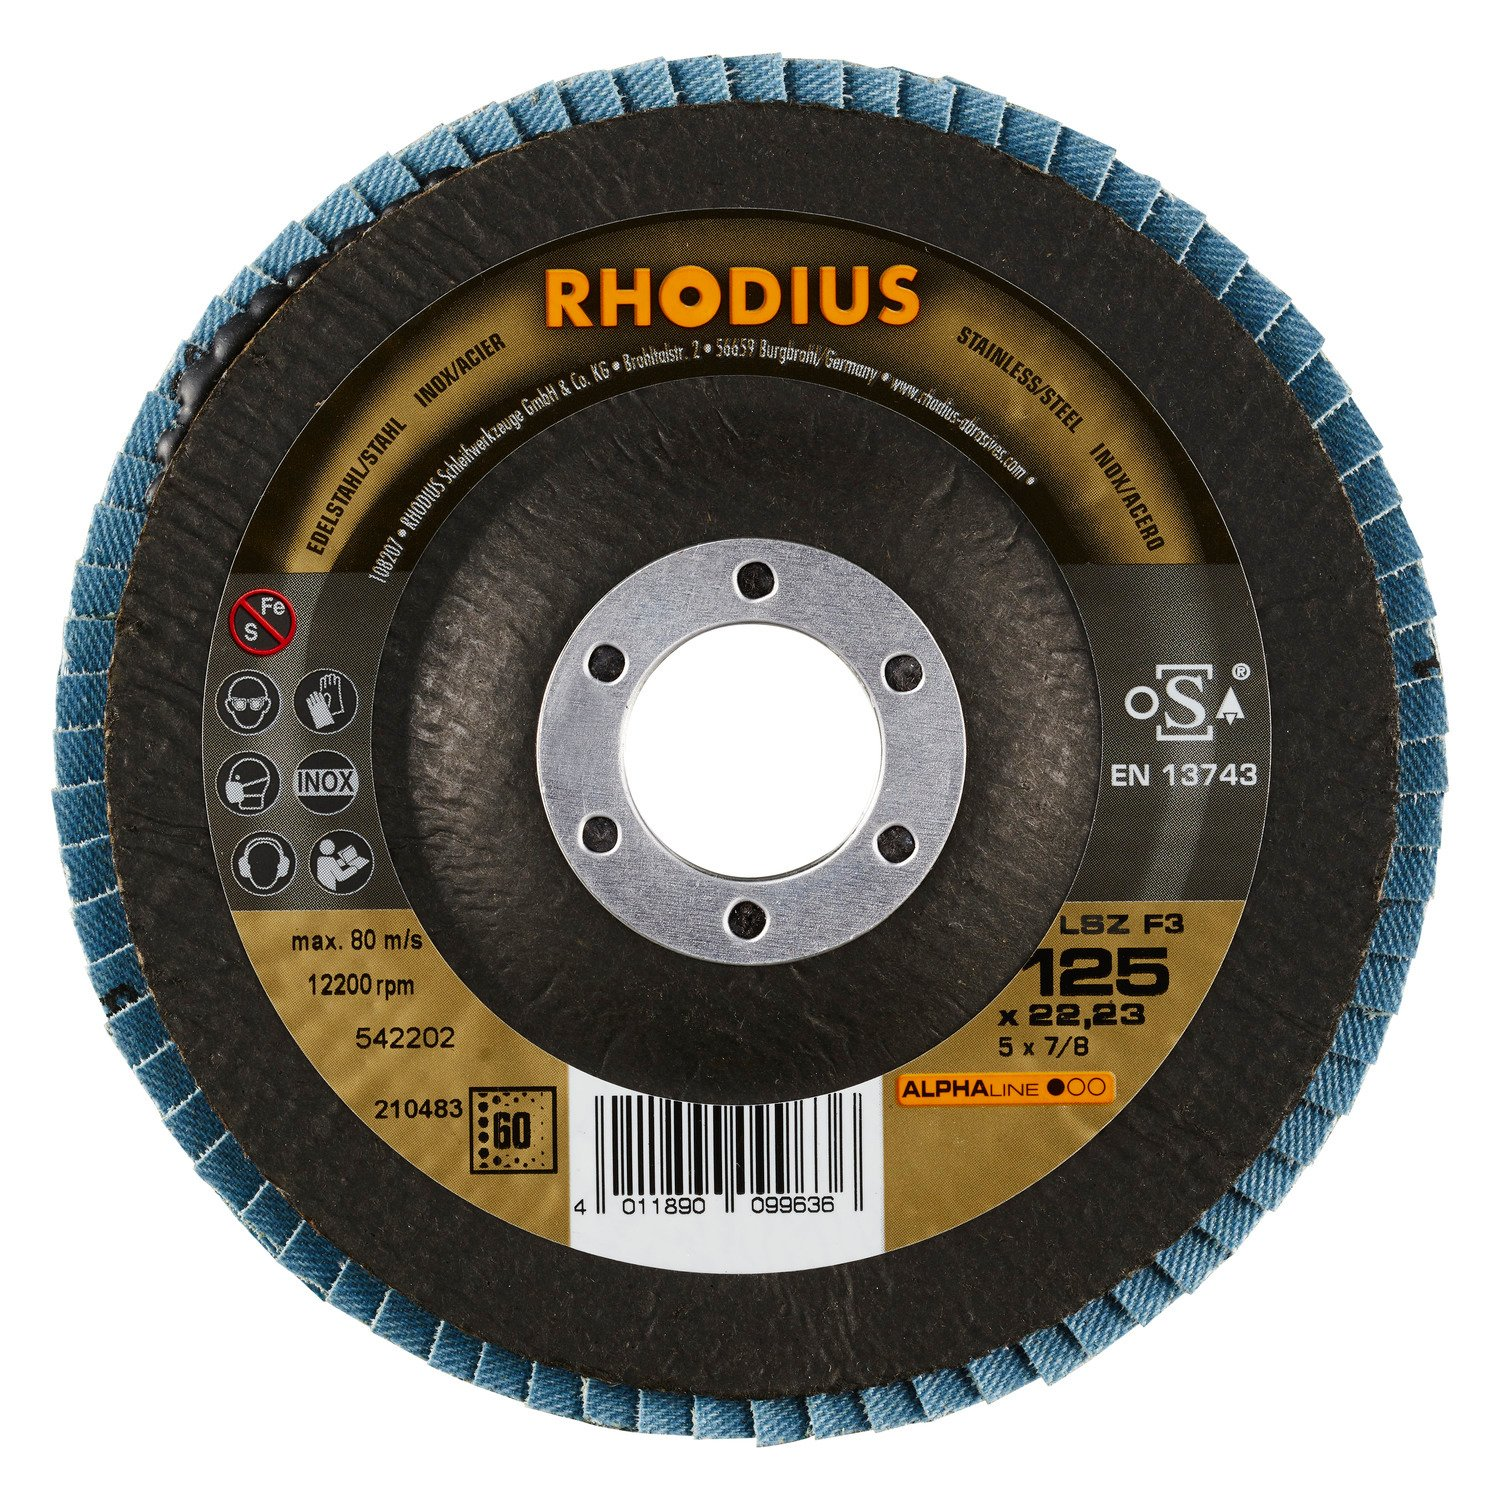 Rhodius 5 Pack of 23 mm Flap Grinding disc, LSZ F3 125 x 22.23 mm K60 for Angle Grinder, Flap Grinder, mop Wheel, Abrasive mop disc, 240 V, 200 W RHODIUS Schleifwerkzeuge GmbH & Co. KG